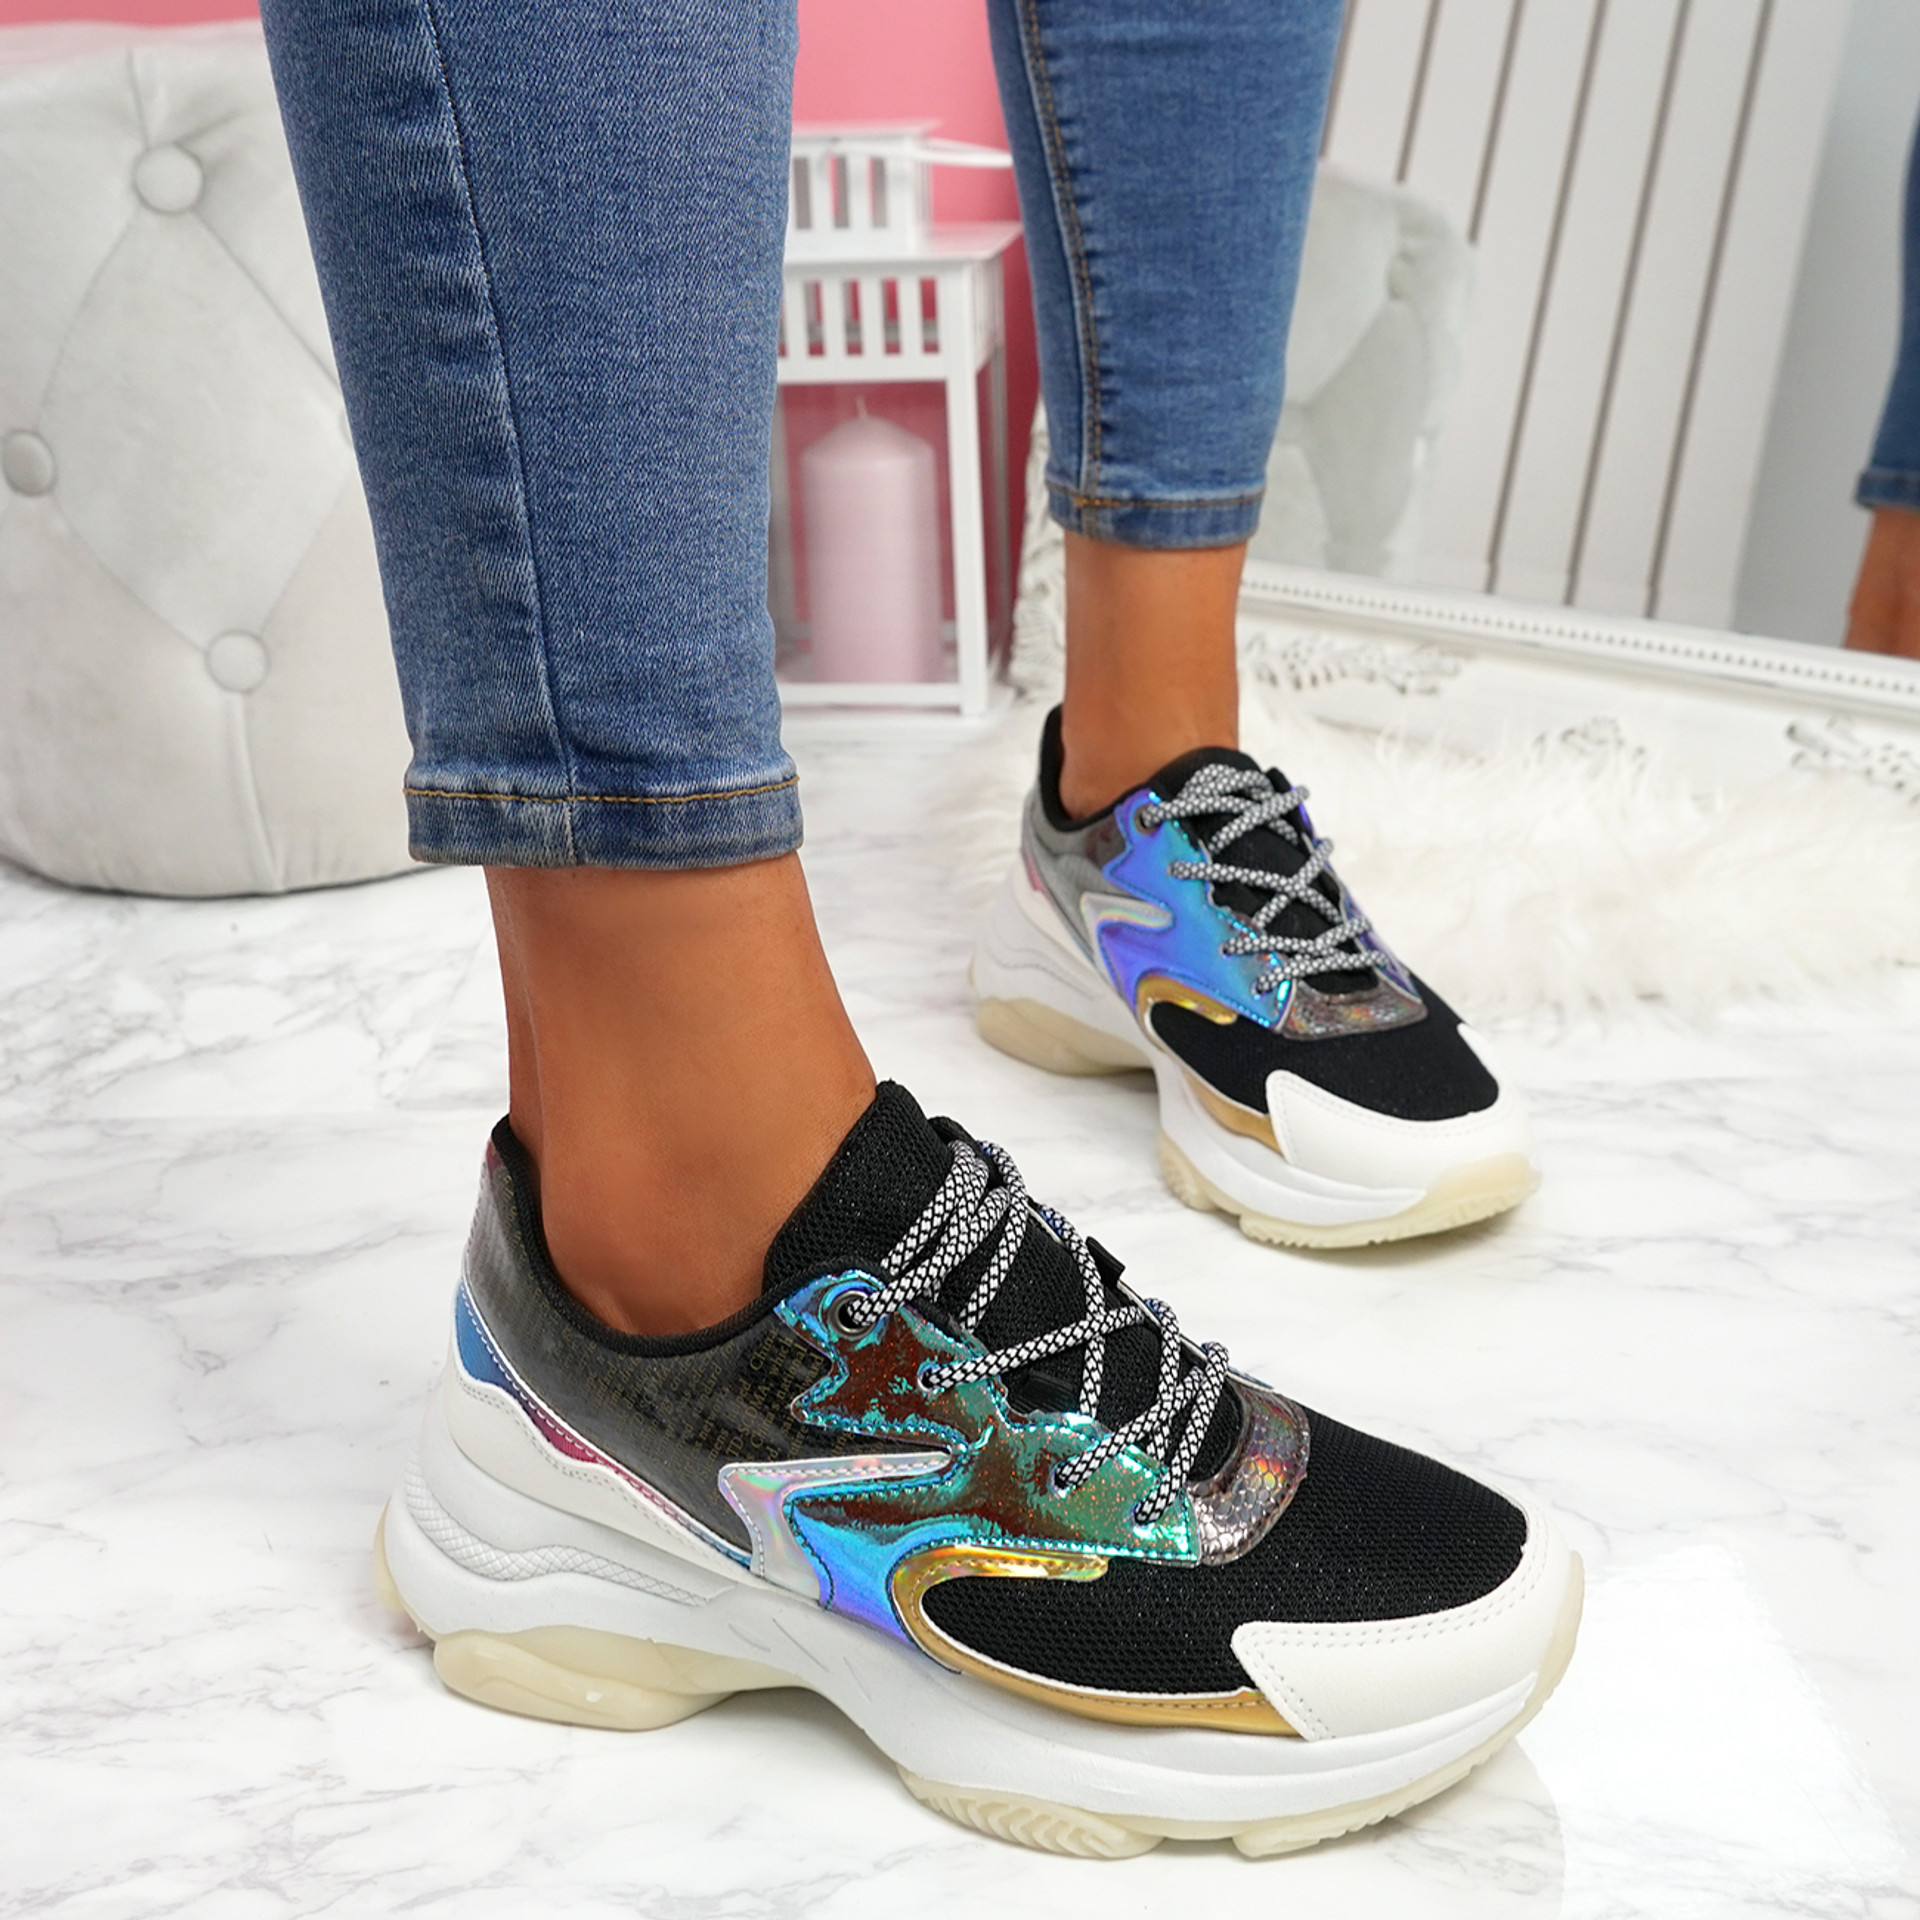 Ogllo Black White Chunky Sole Sneakers